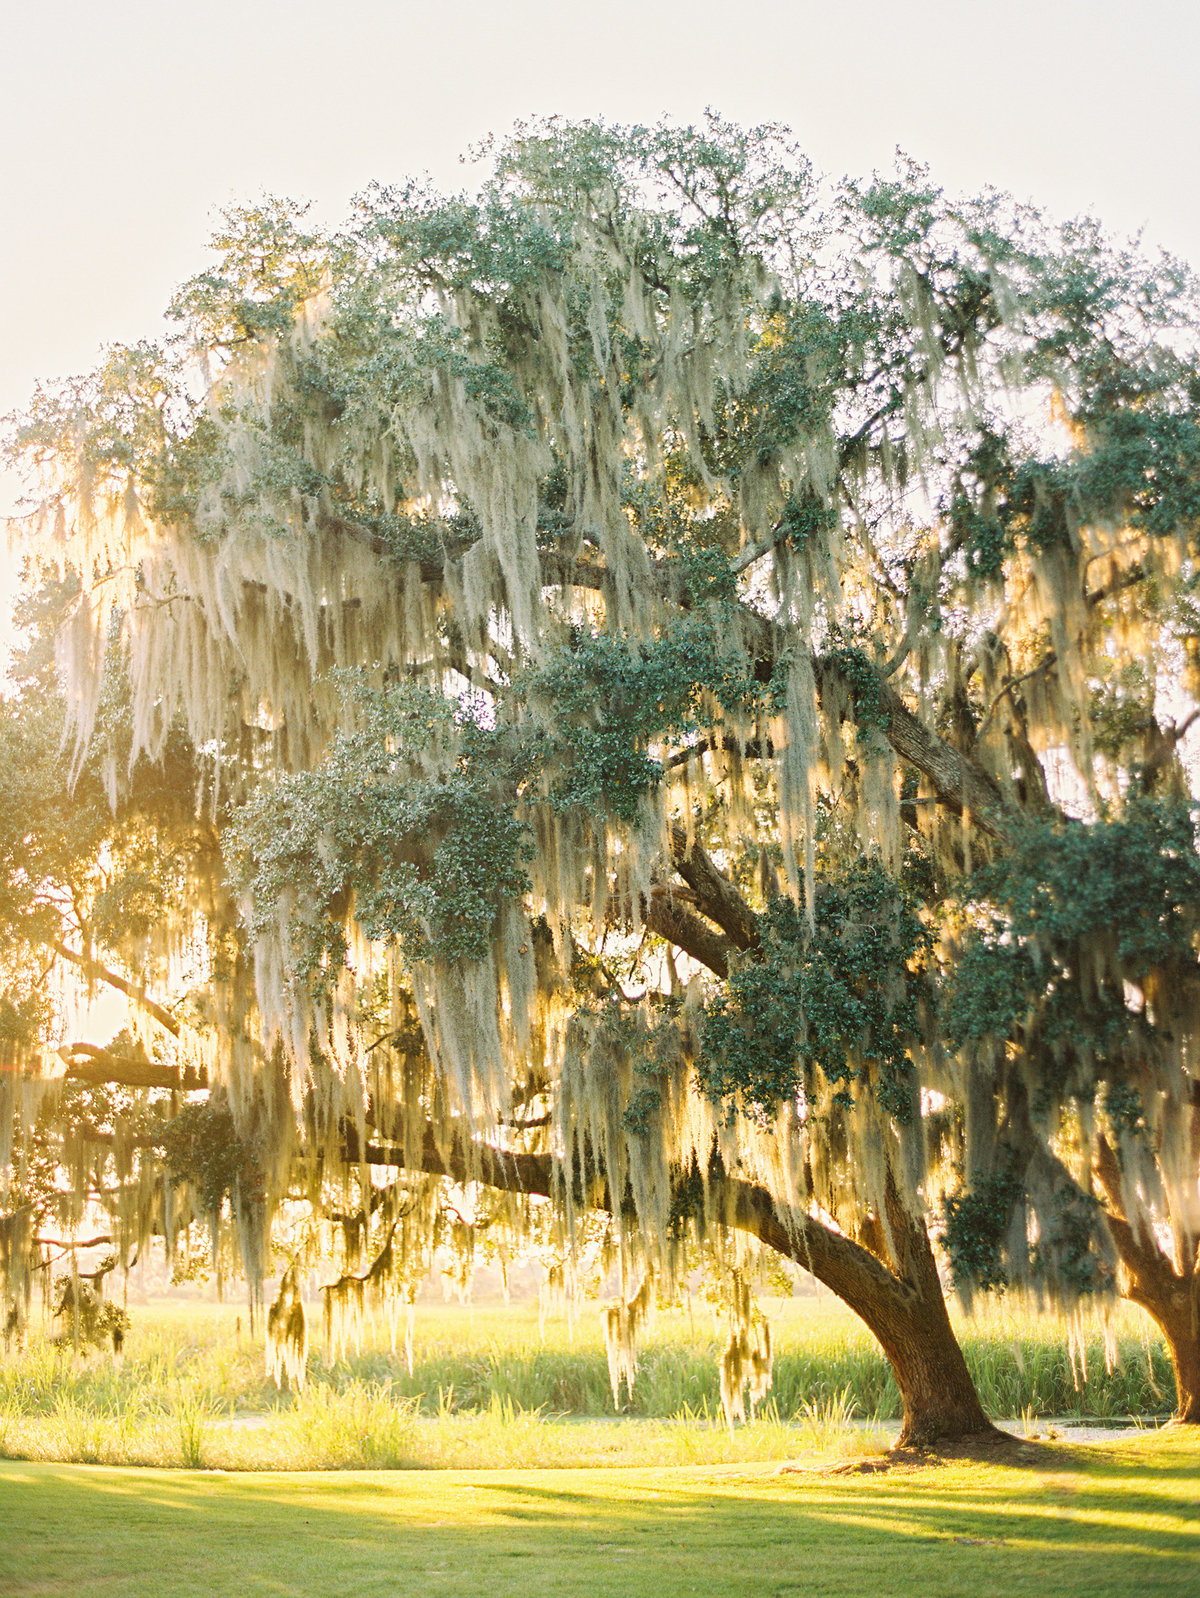 Giant oak tree with spanish moss at sunset.